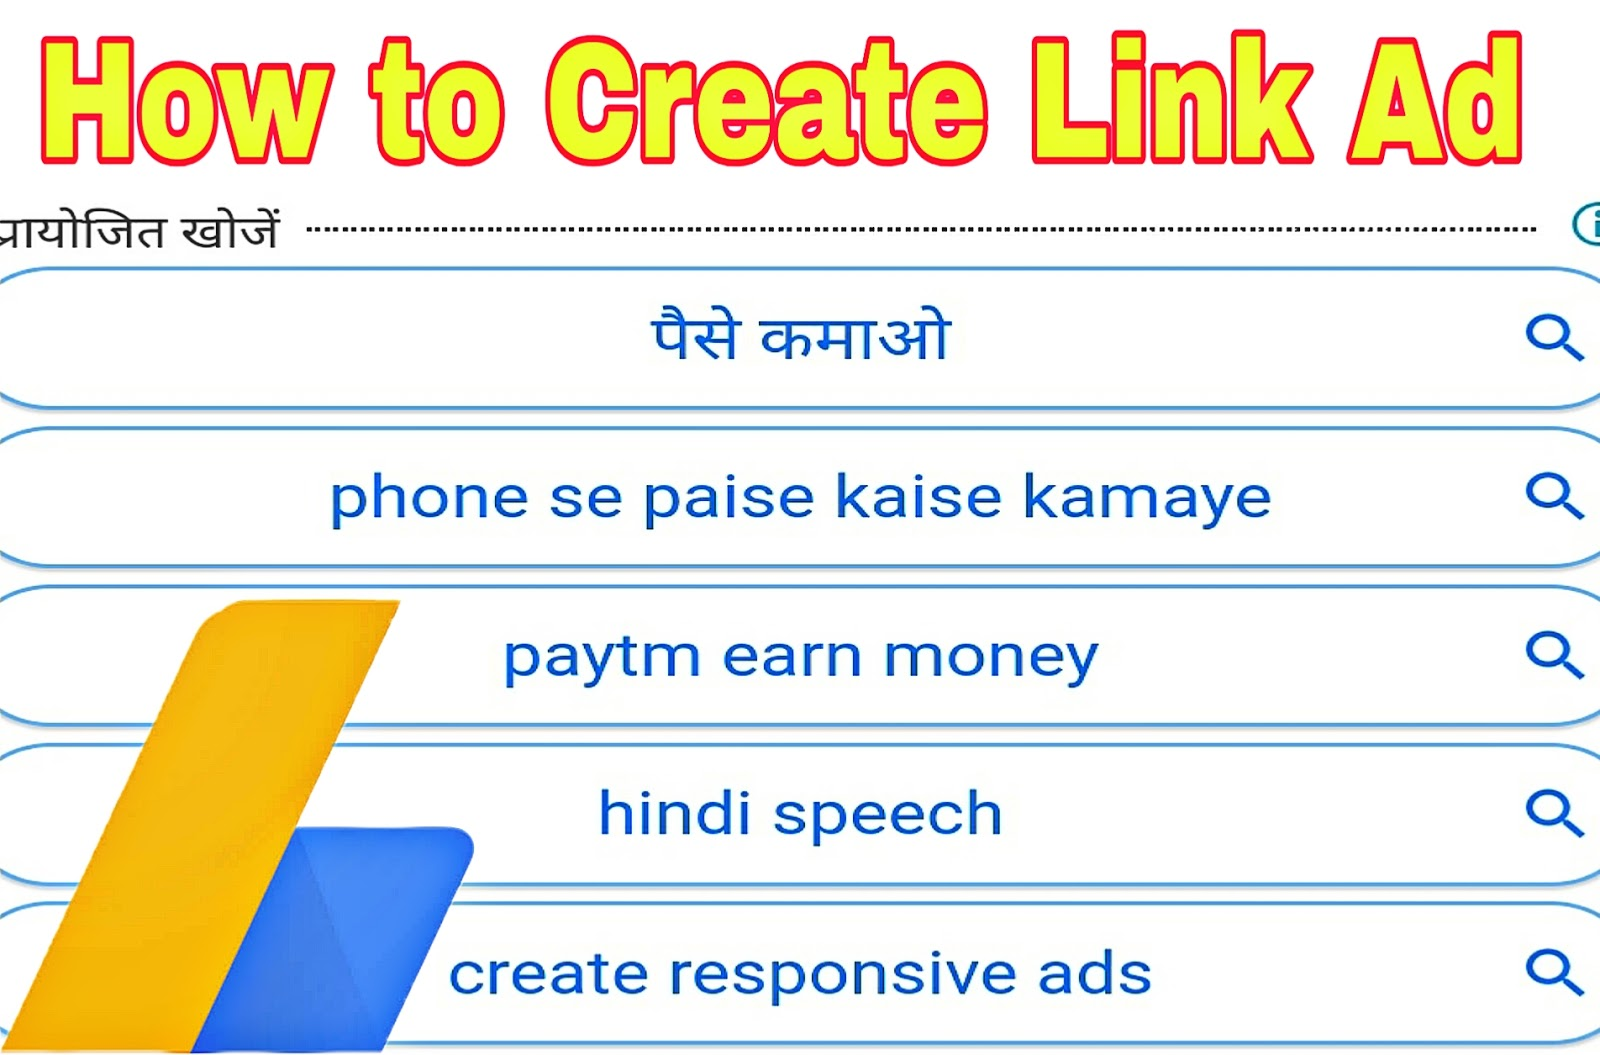 How to Create Google Adsense Link Ad Step by Step | Adsence Link Ad Kaise Banaye